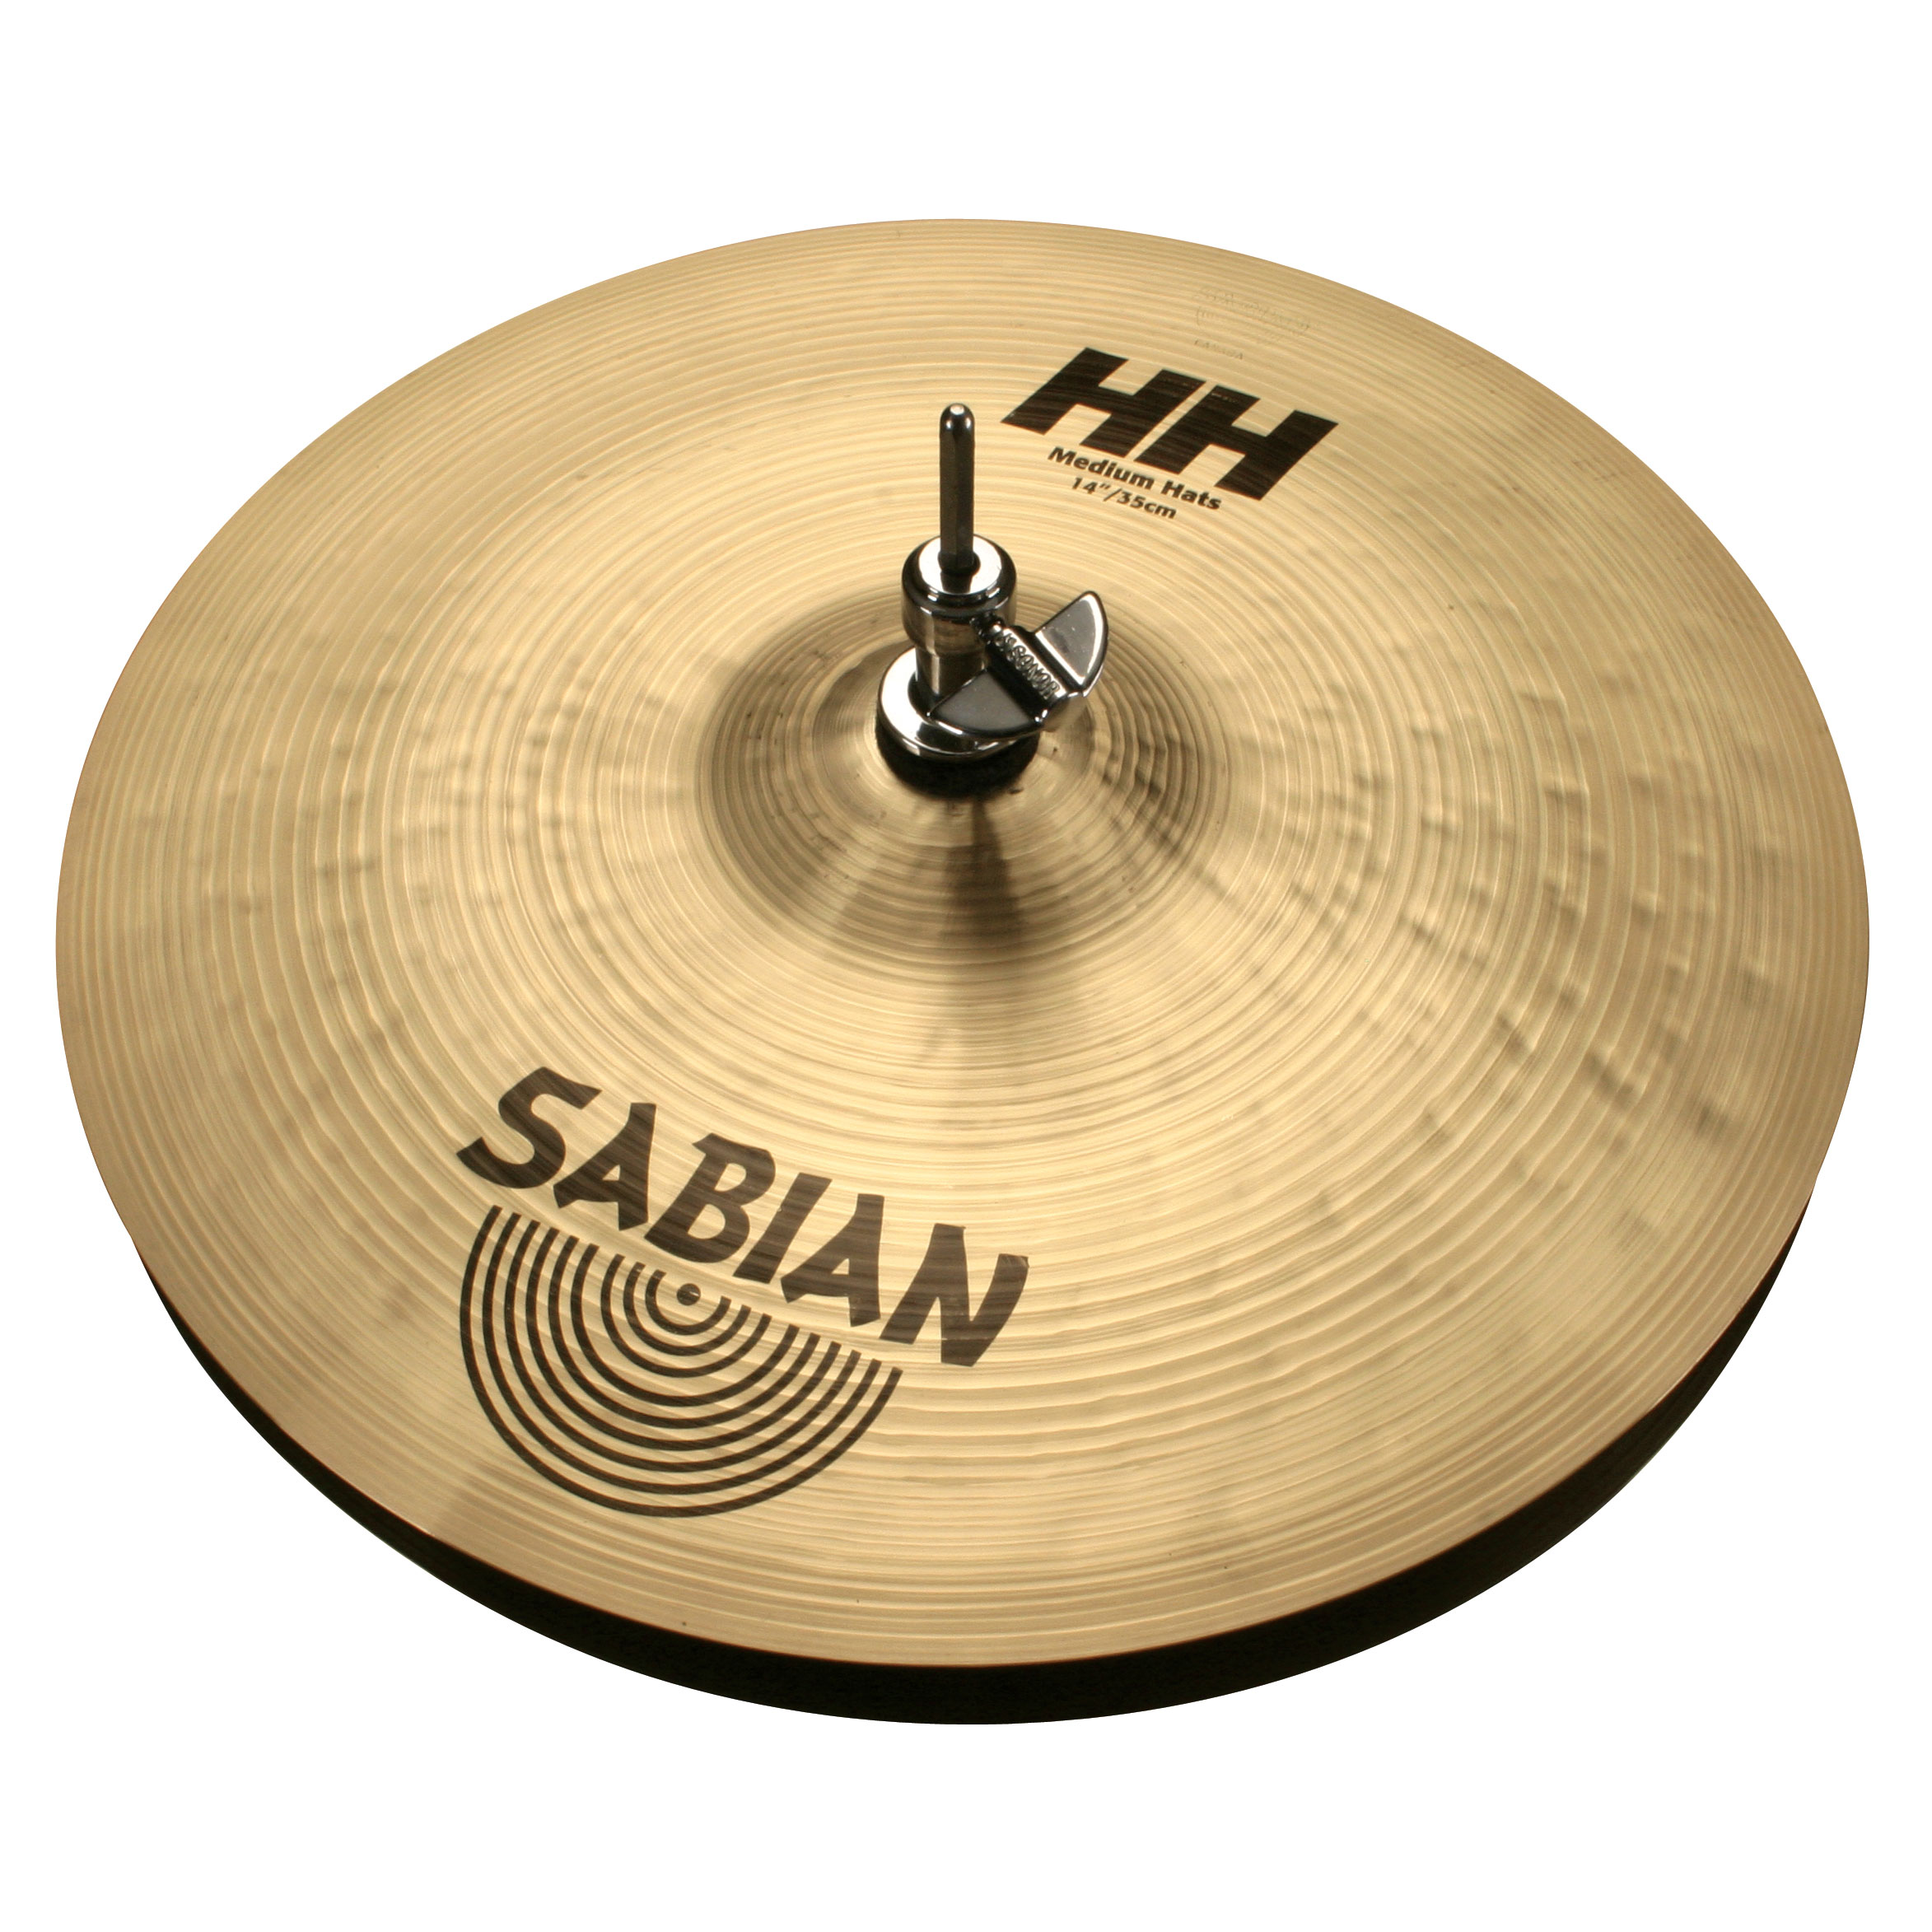 "Sabian 14"" HH Medium Hi Hat Cymbals"